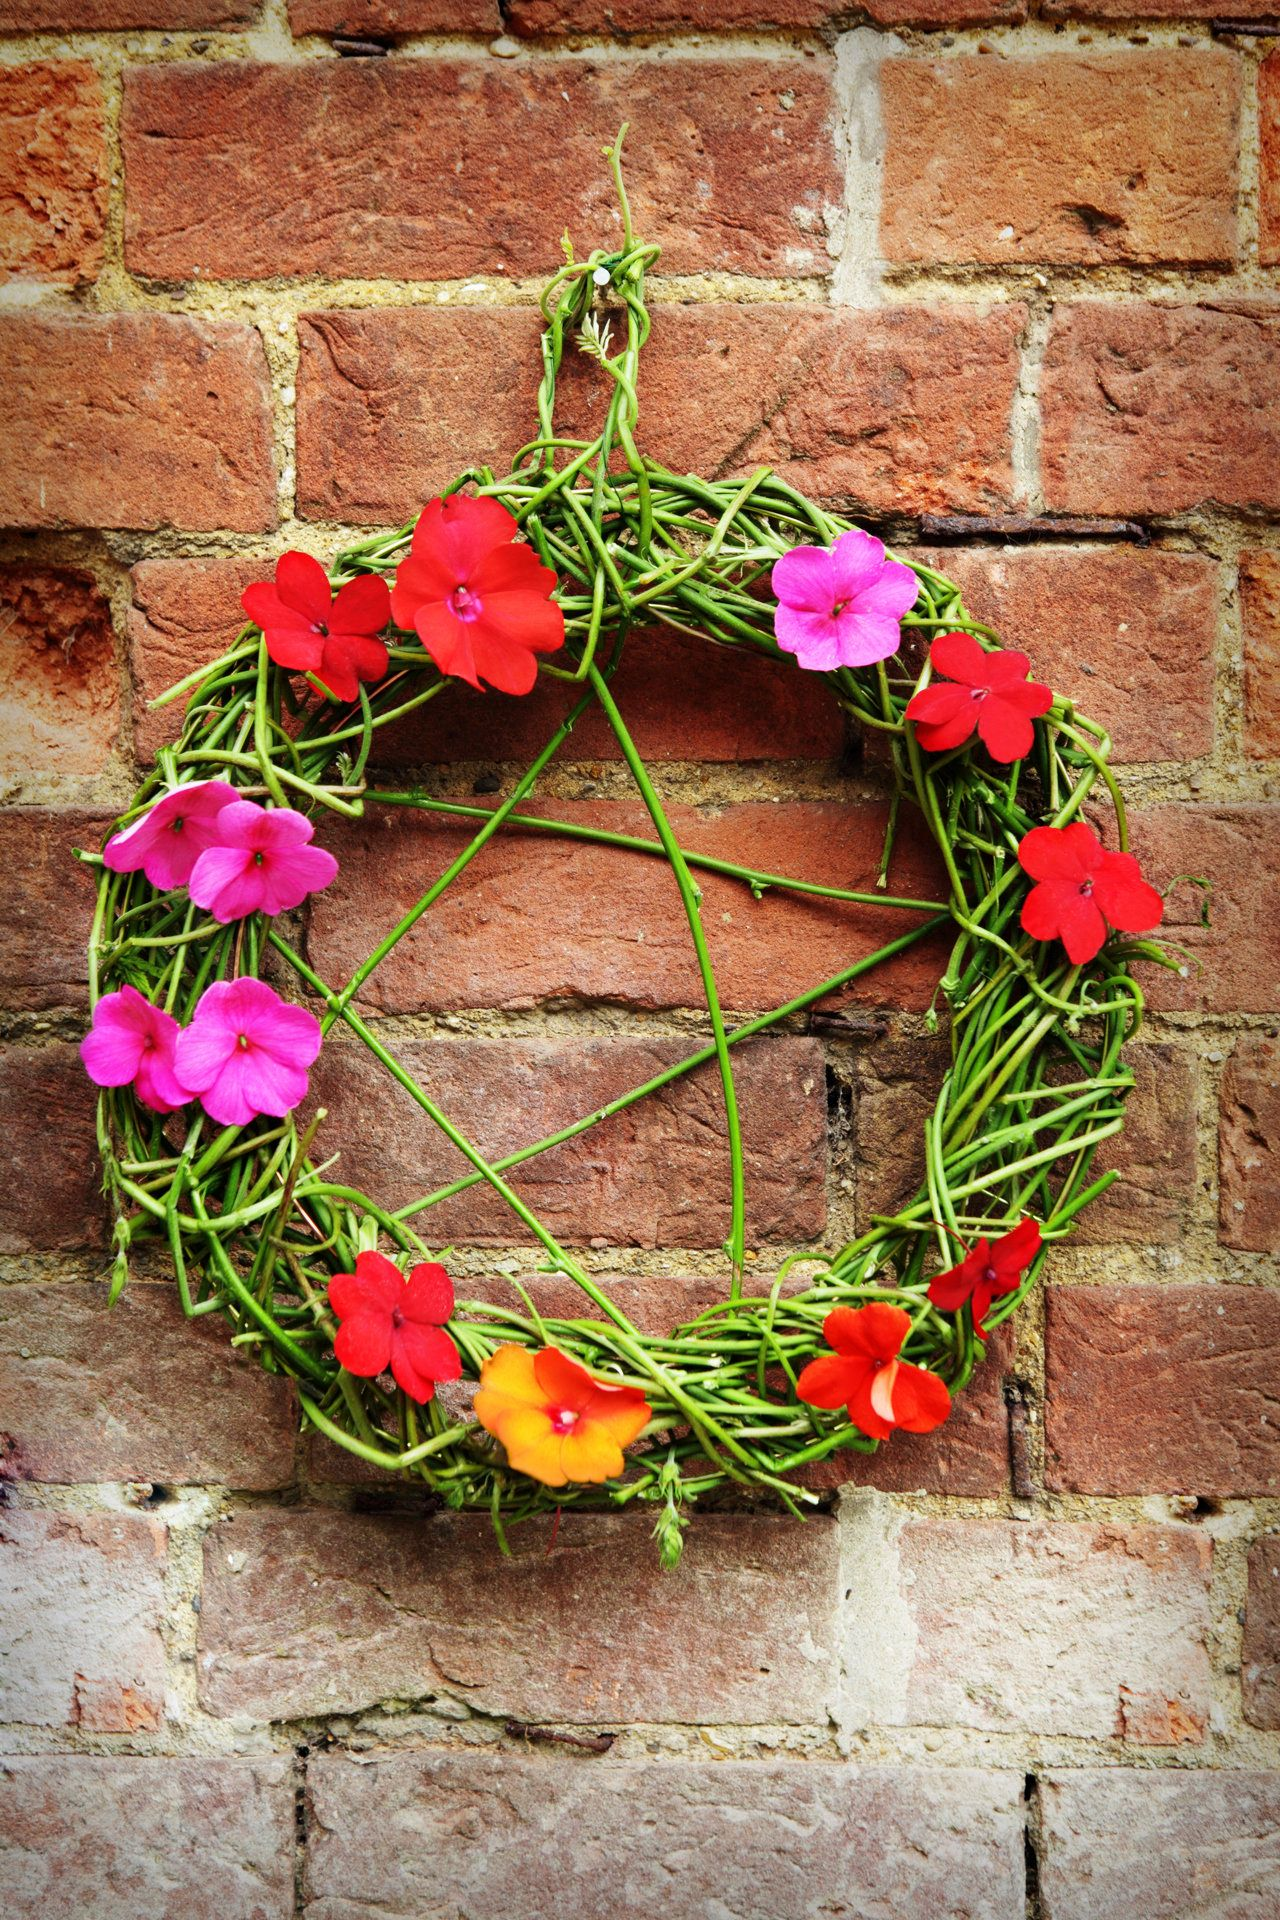 a pagan / wiccan pentangle or pentagram woven from fresh hops and decorated with fresh flowers ( Impatiens / Busy Lizzies ) for Lammas / Lughnasadh or Beltane celebrations.